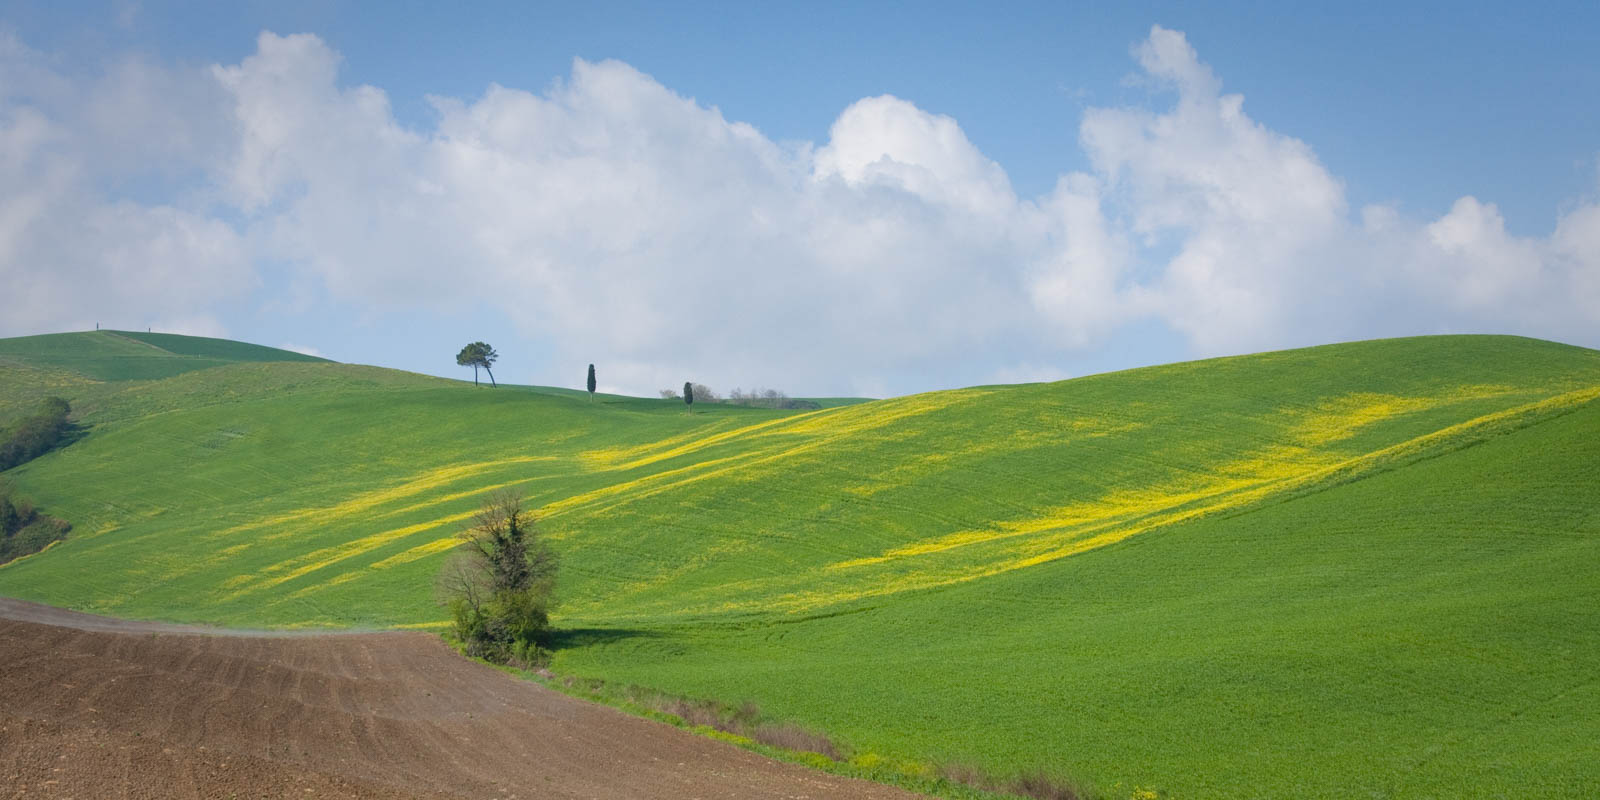 On the road to Montepulciano through the impossibly green Val d'Orcia. ©Kevin Day